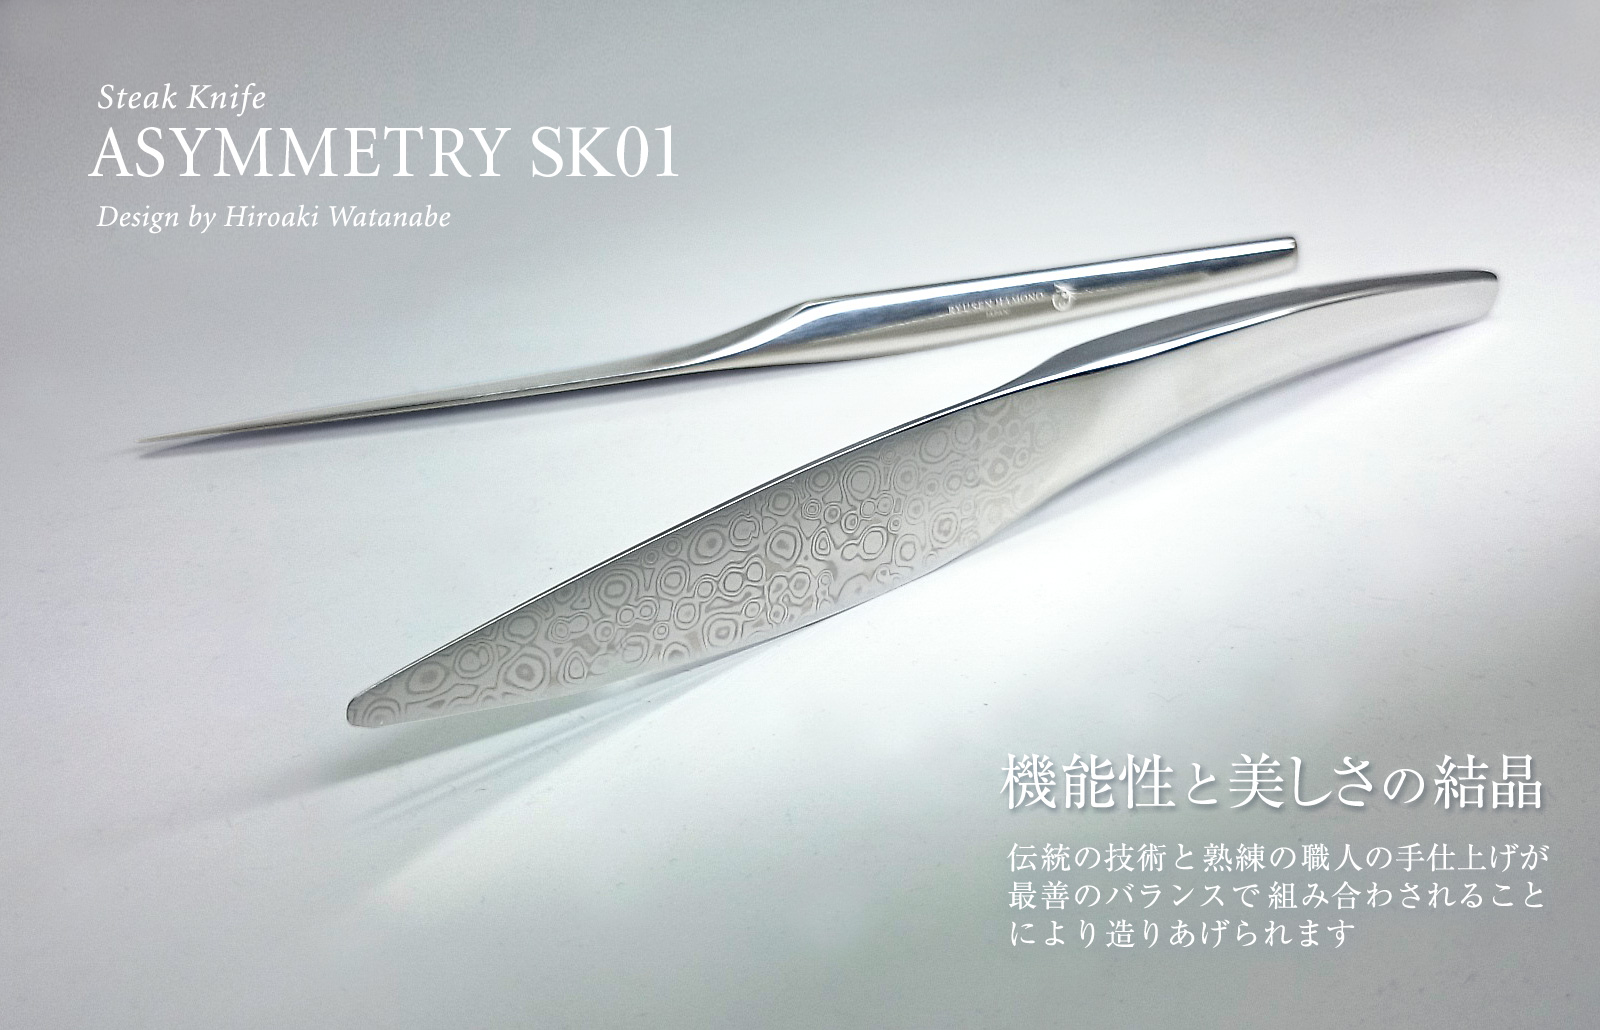 Steak knife ASYMMETRY SK01